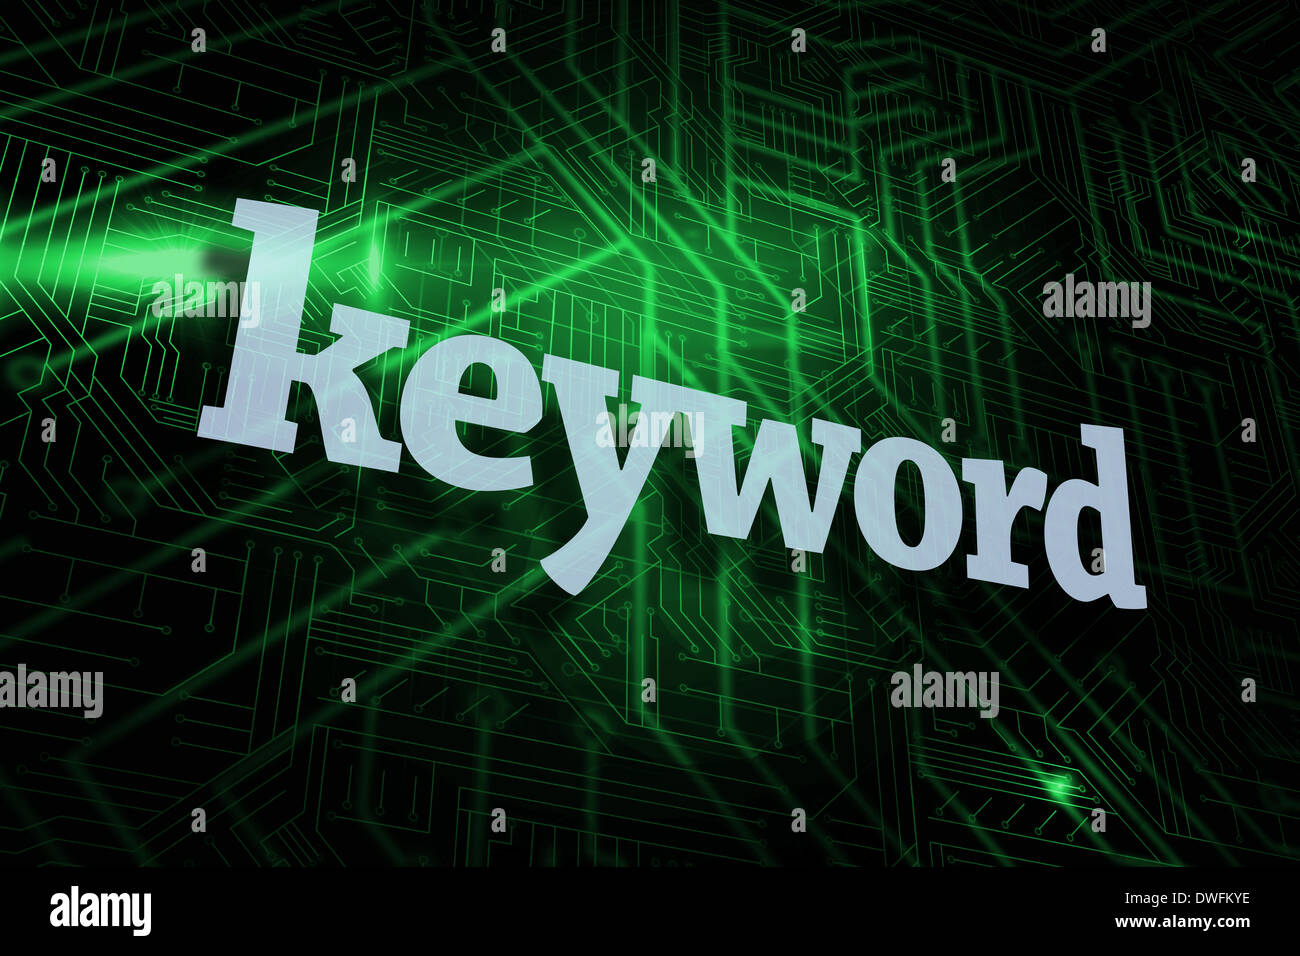 Keyword against green and black circuit board - Stock Image